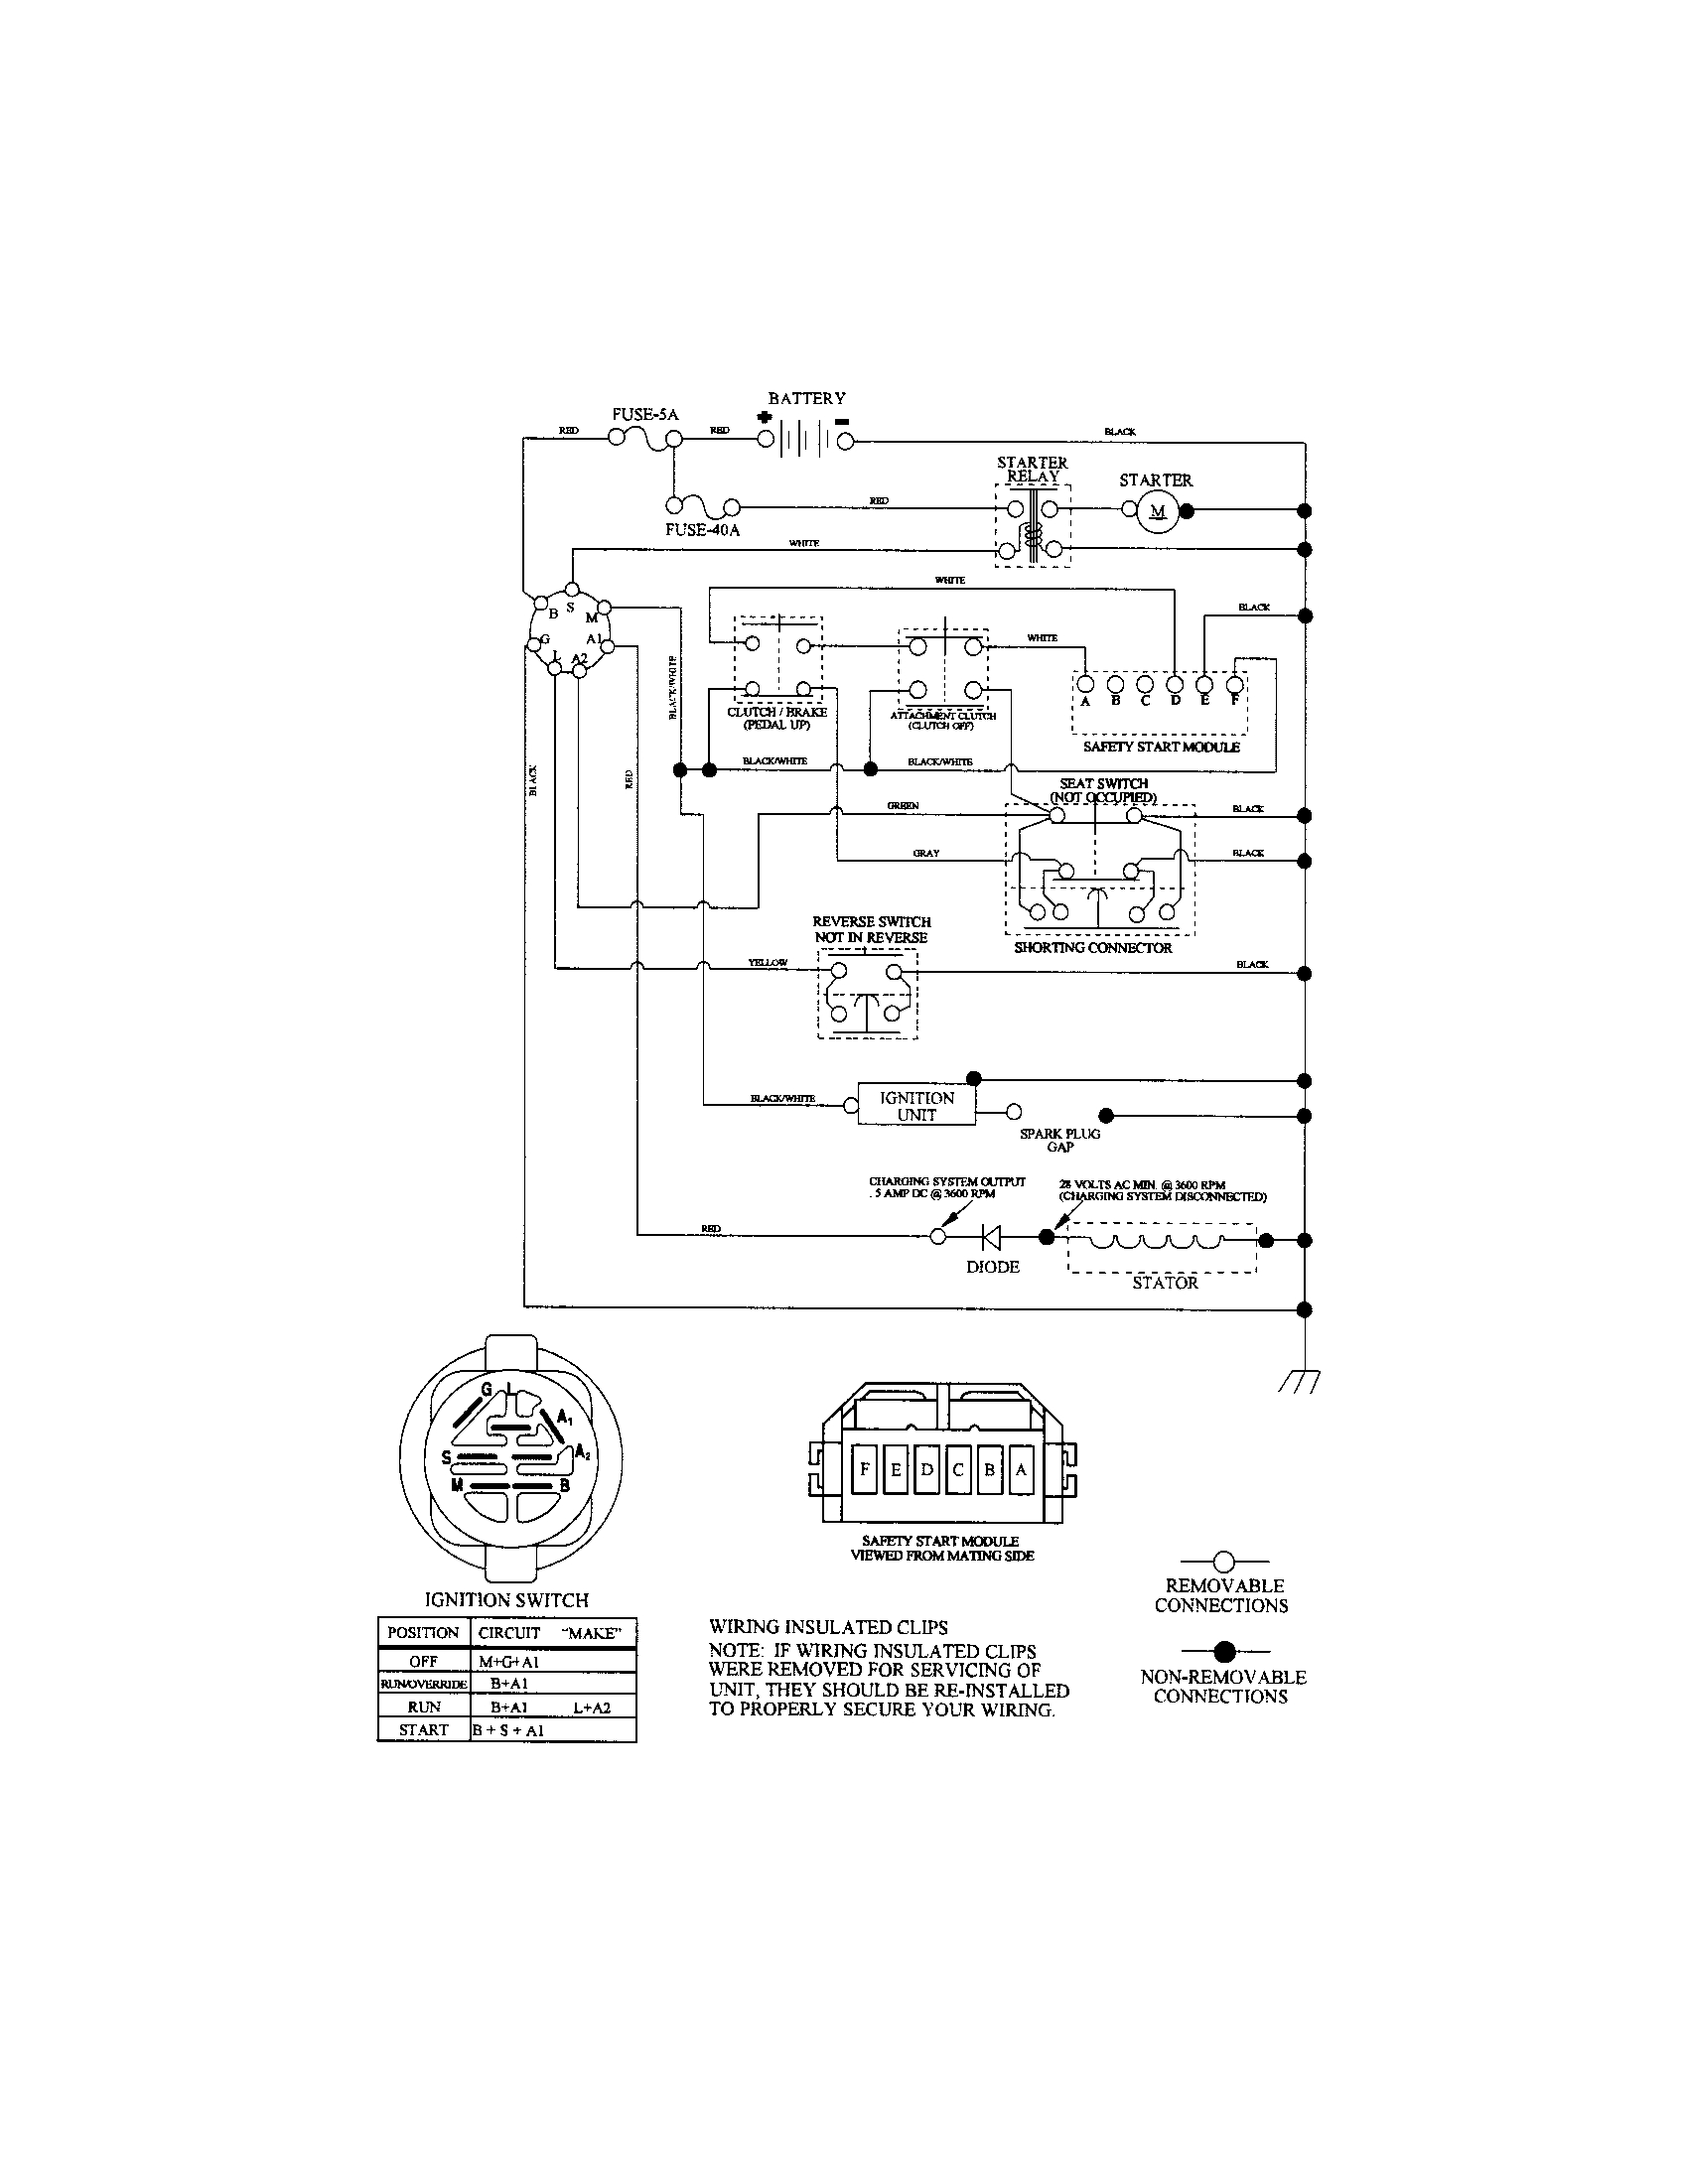 Garden Tractor Wiring Diagram | Wiring Schematic Diagram on